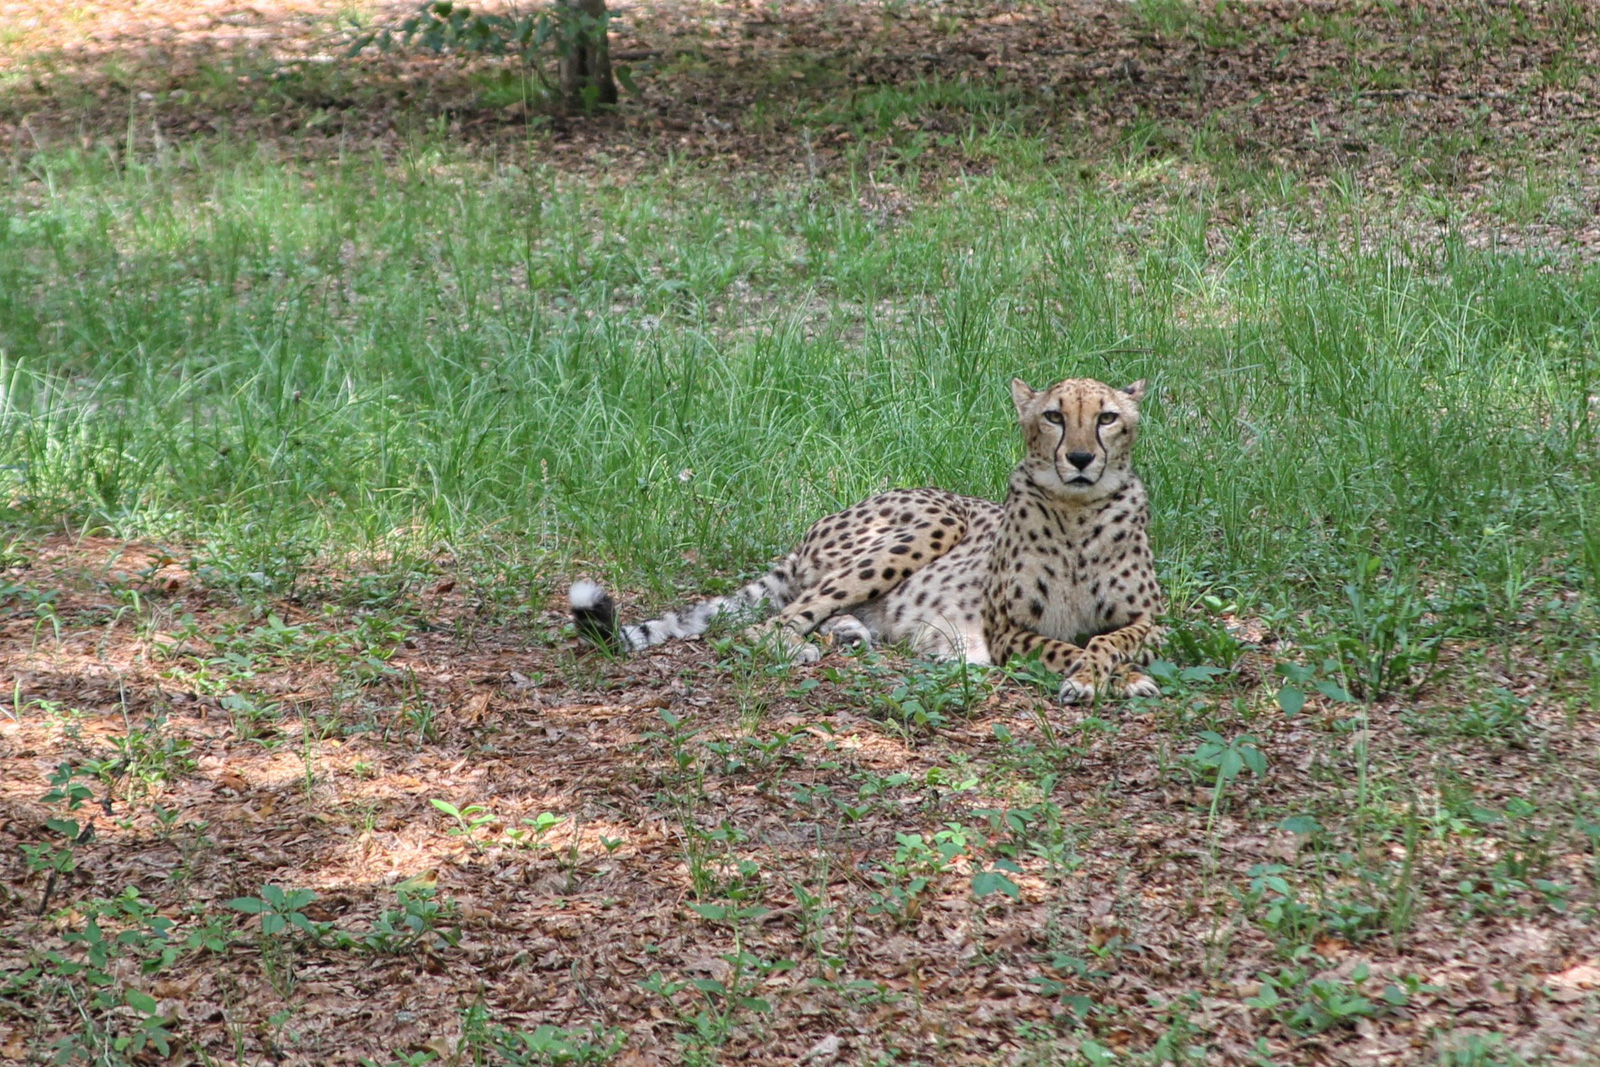 A cheetah at Chehaw Park in Albany. Photo by Candy Cook